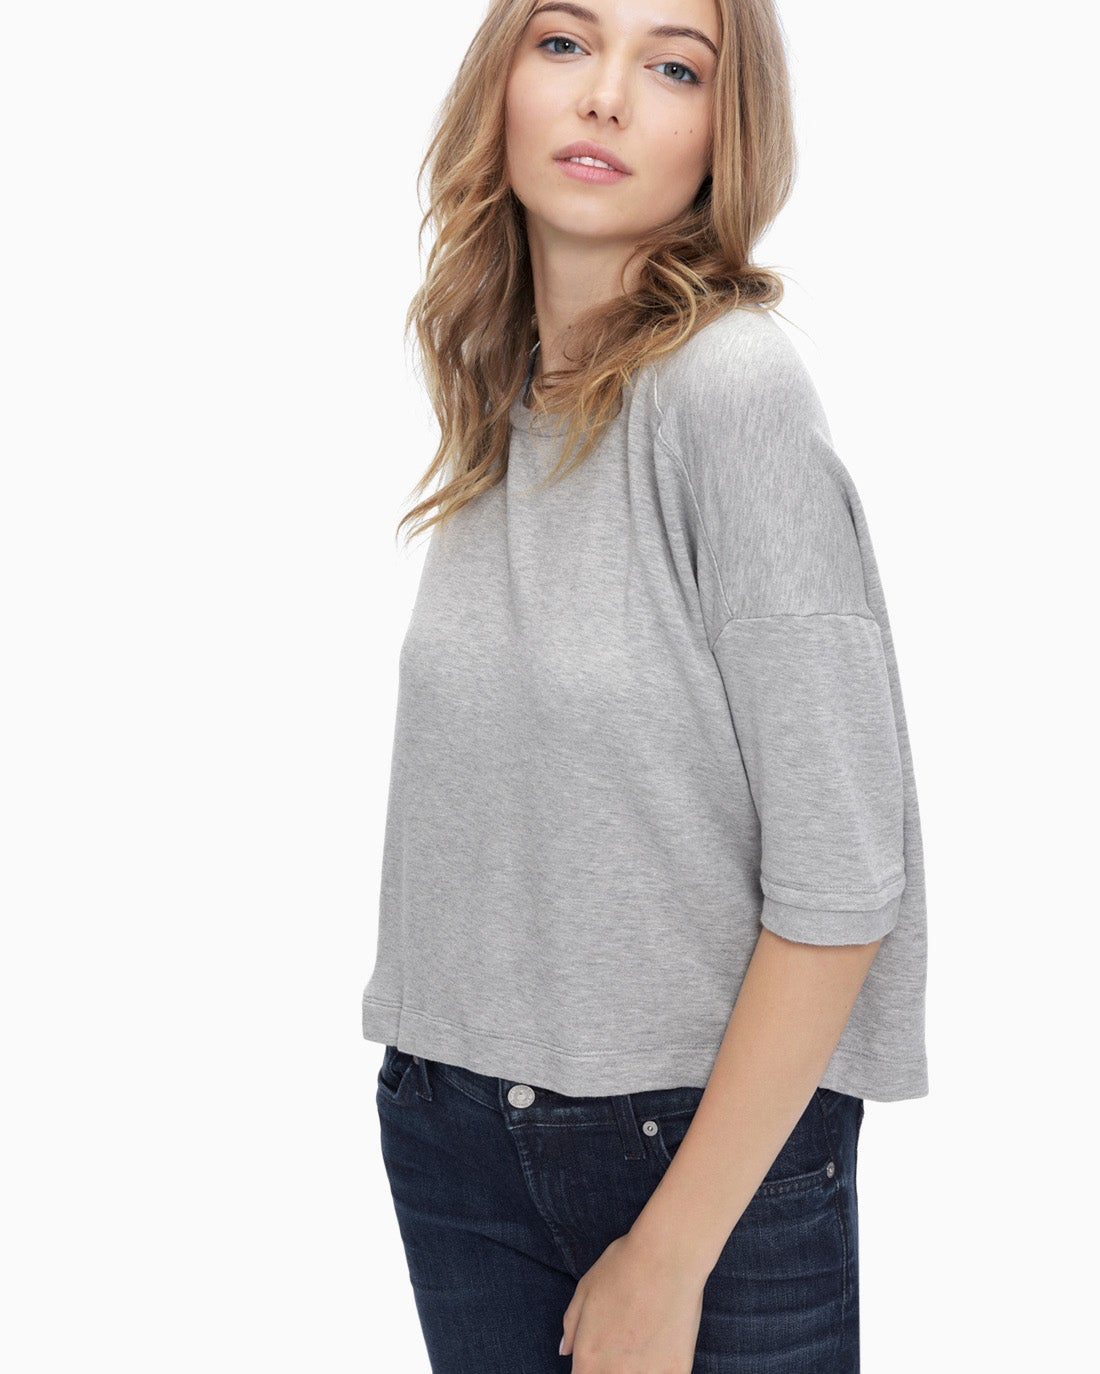 Splendid Women's Super Soft Brushed French Terry Oversize Tee